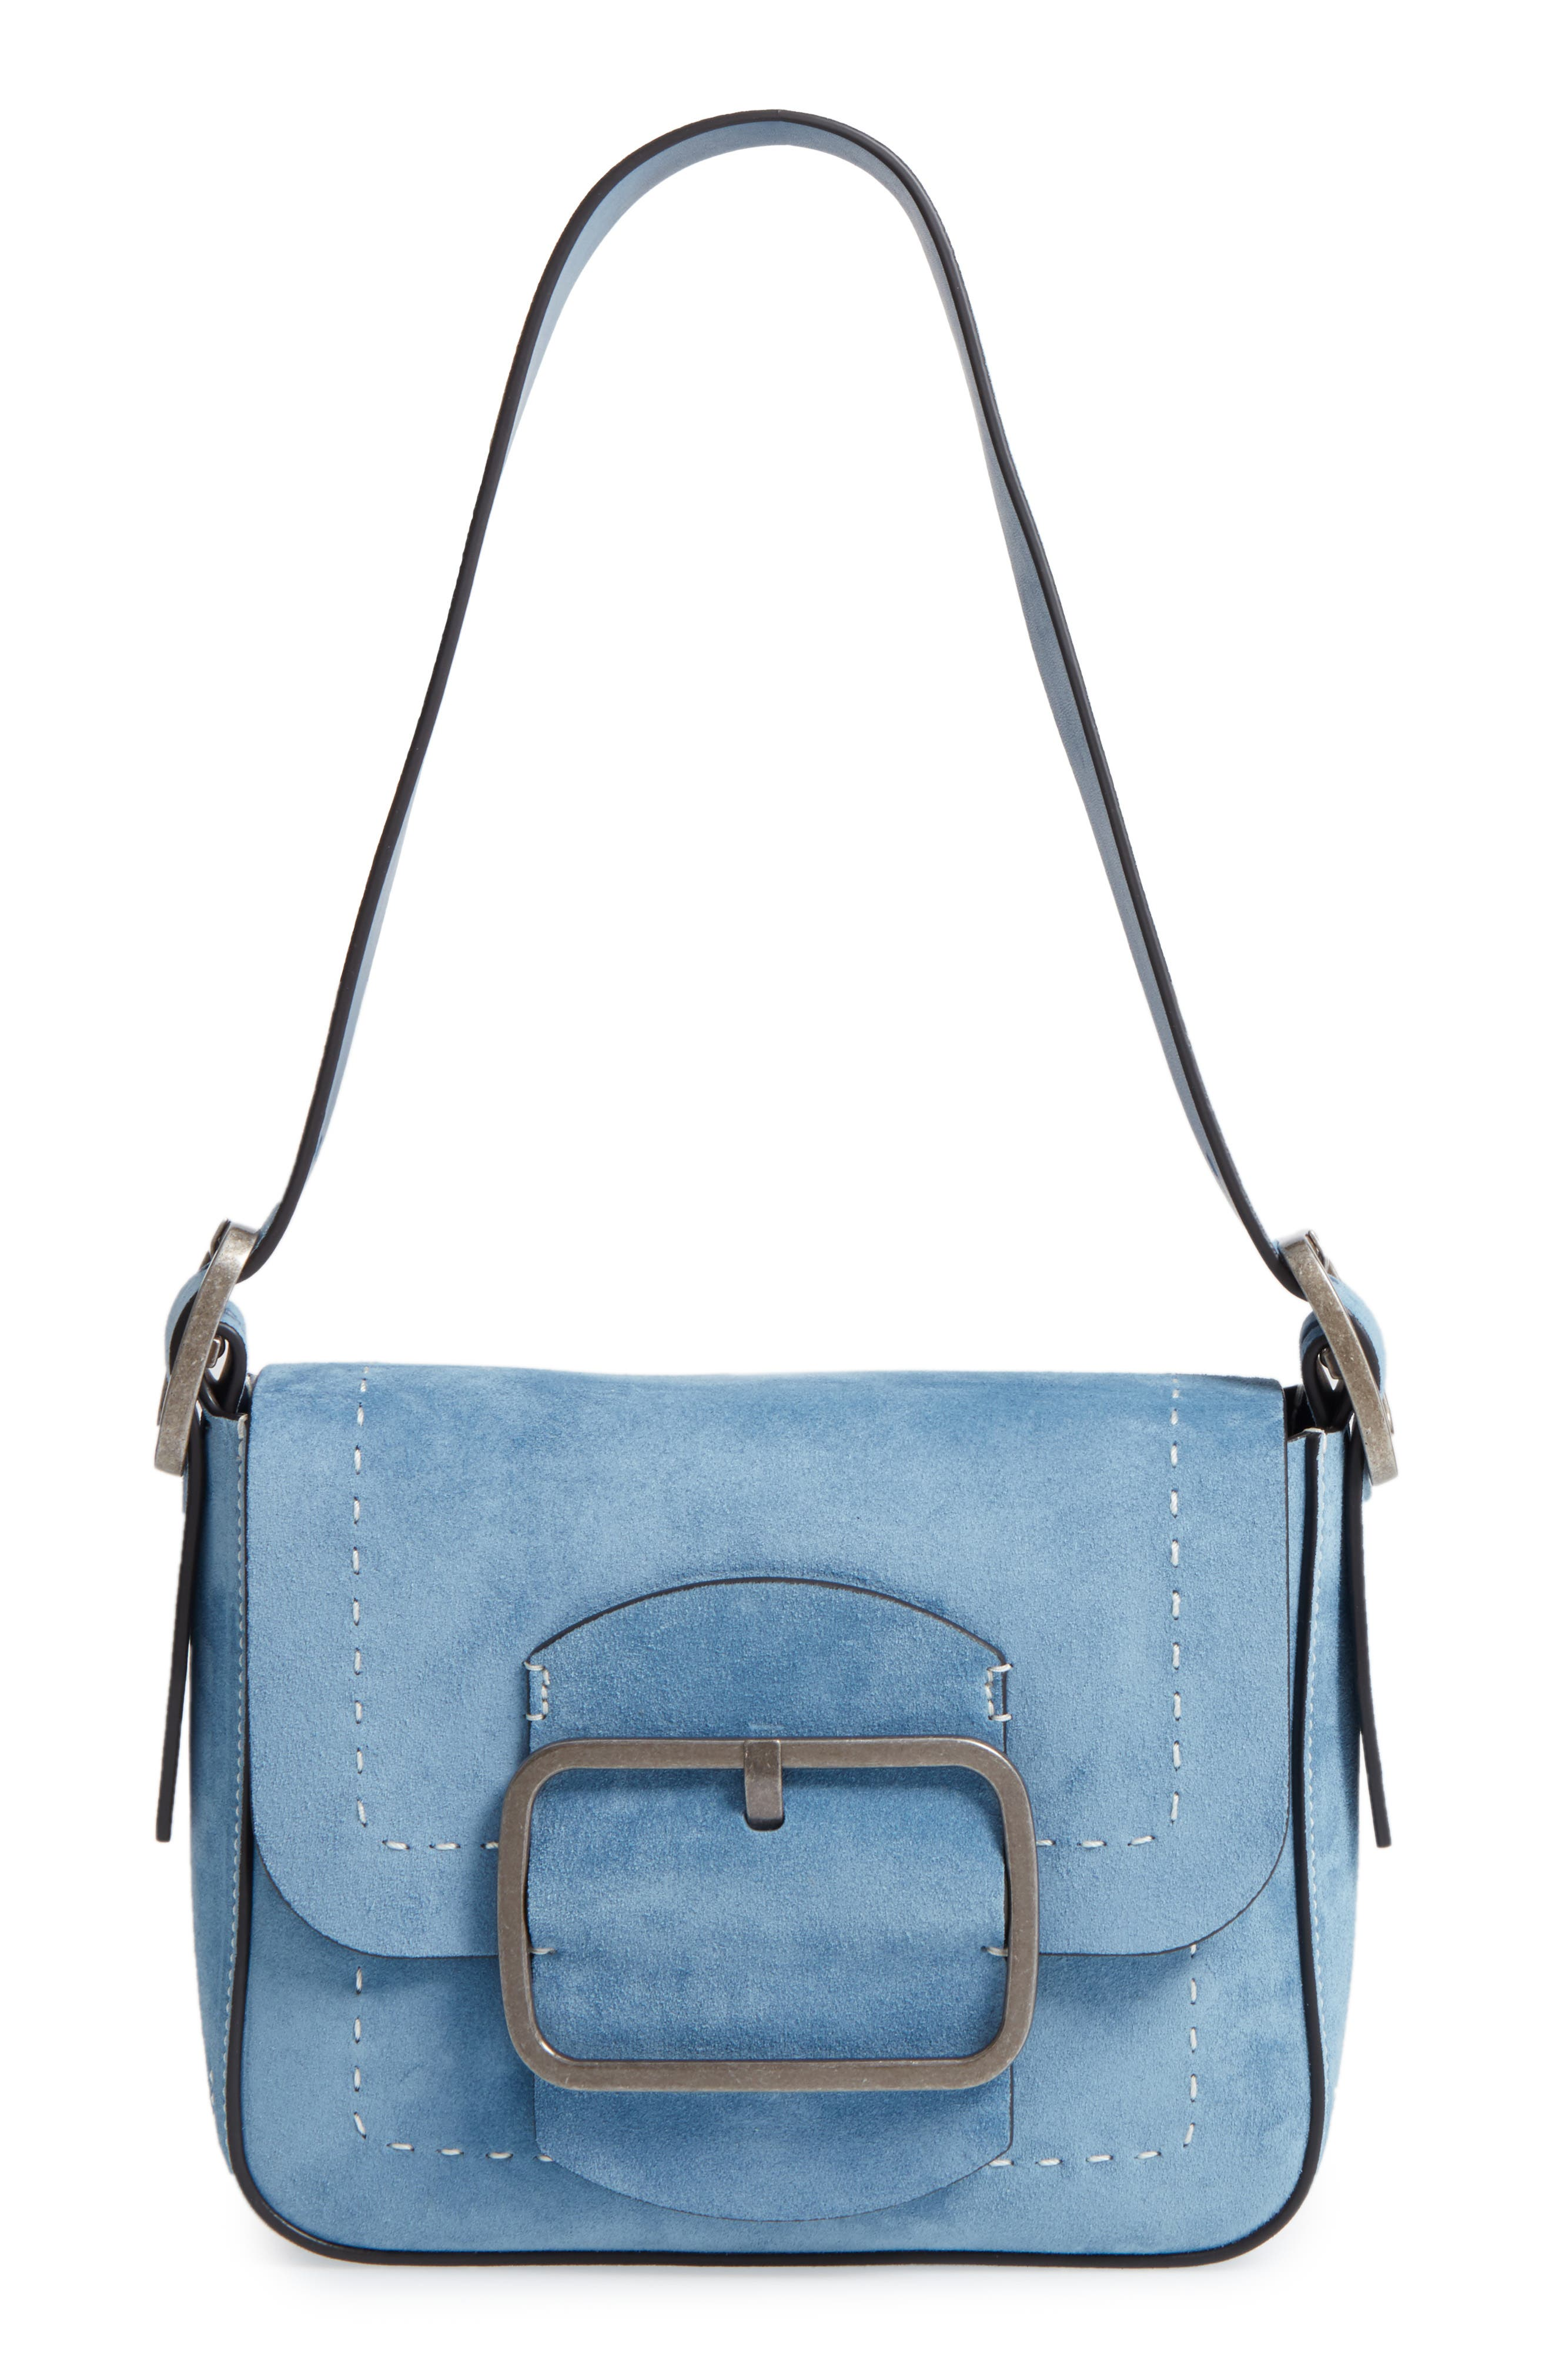 Main Image - Tory Burch Small Sawyer Suede Shoulder Bag